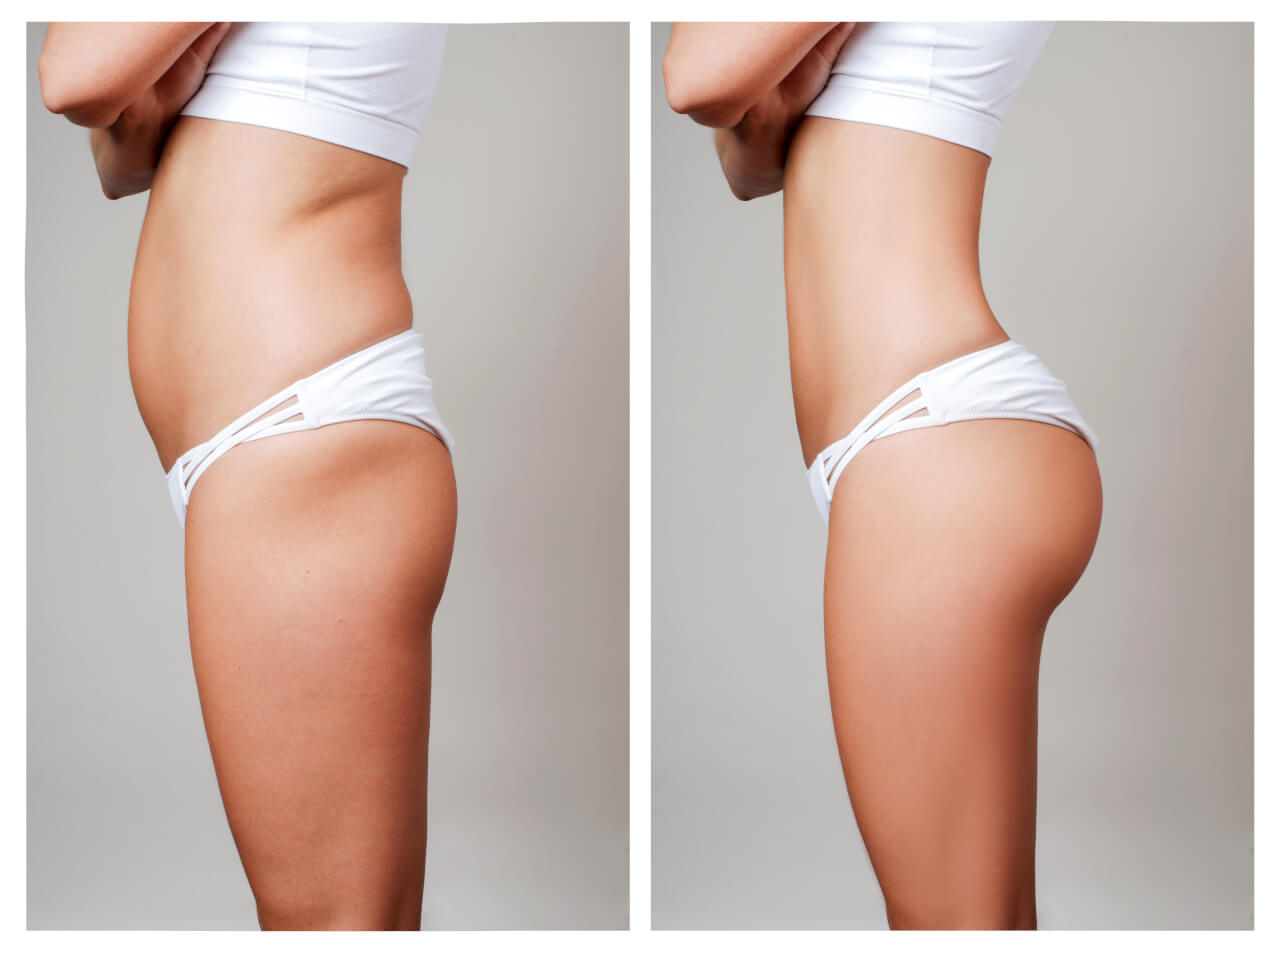 Is Liposuction Worth It? Let's Have A Look